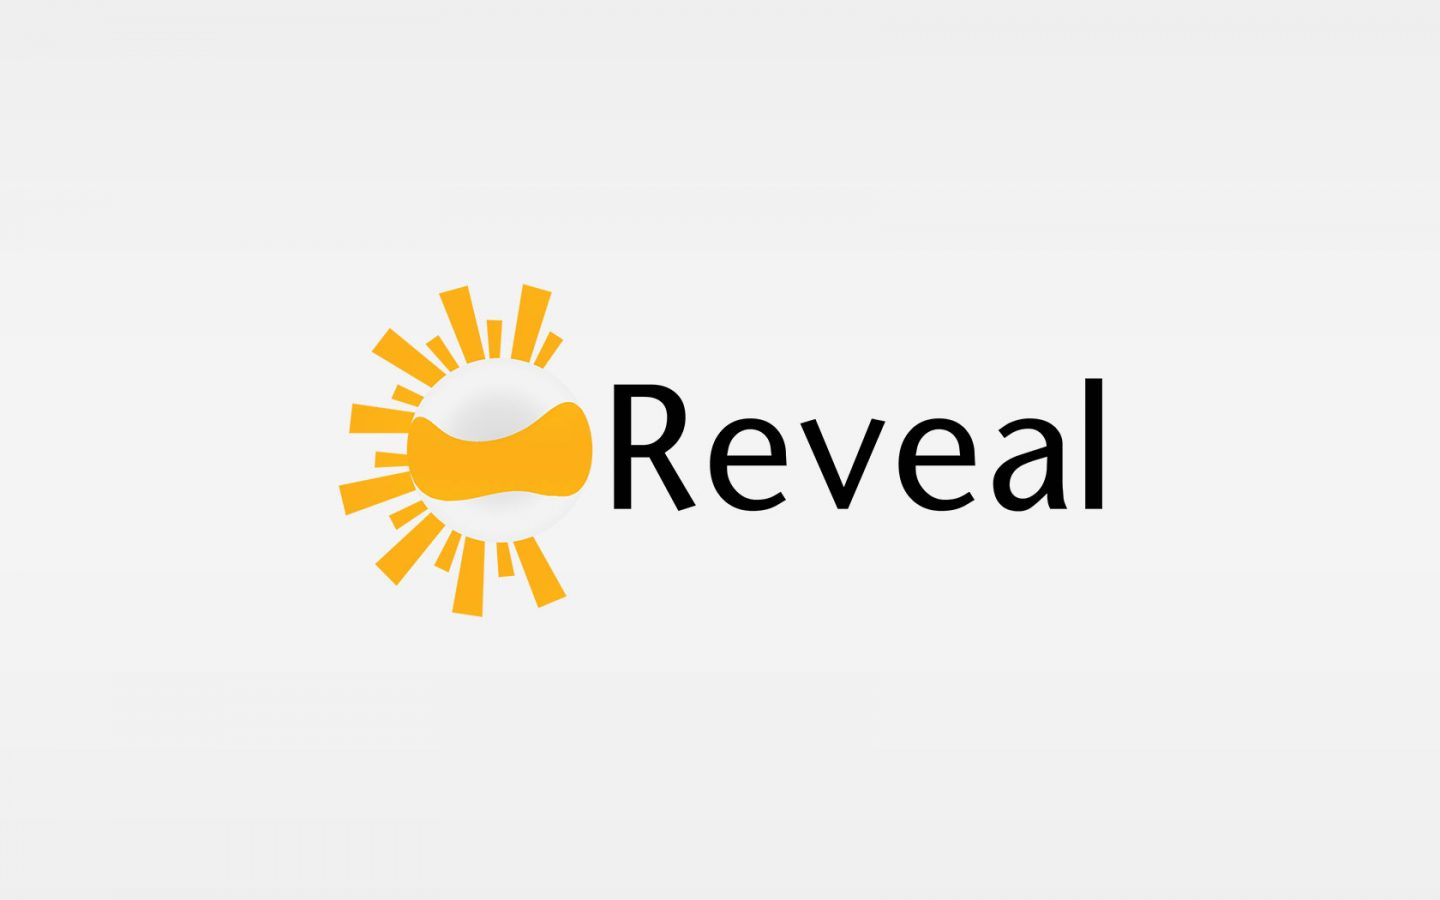 reveal logo design concept